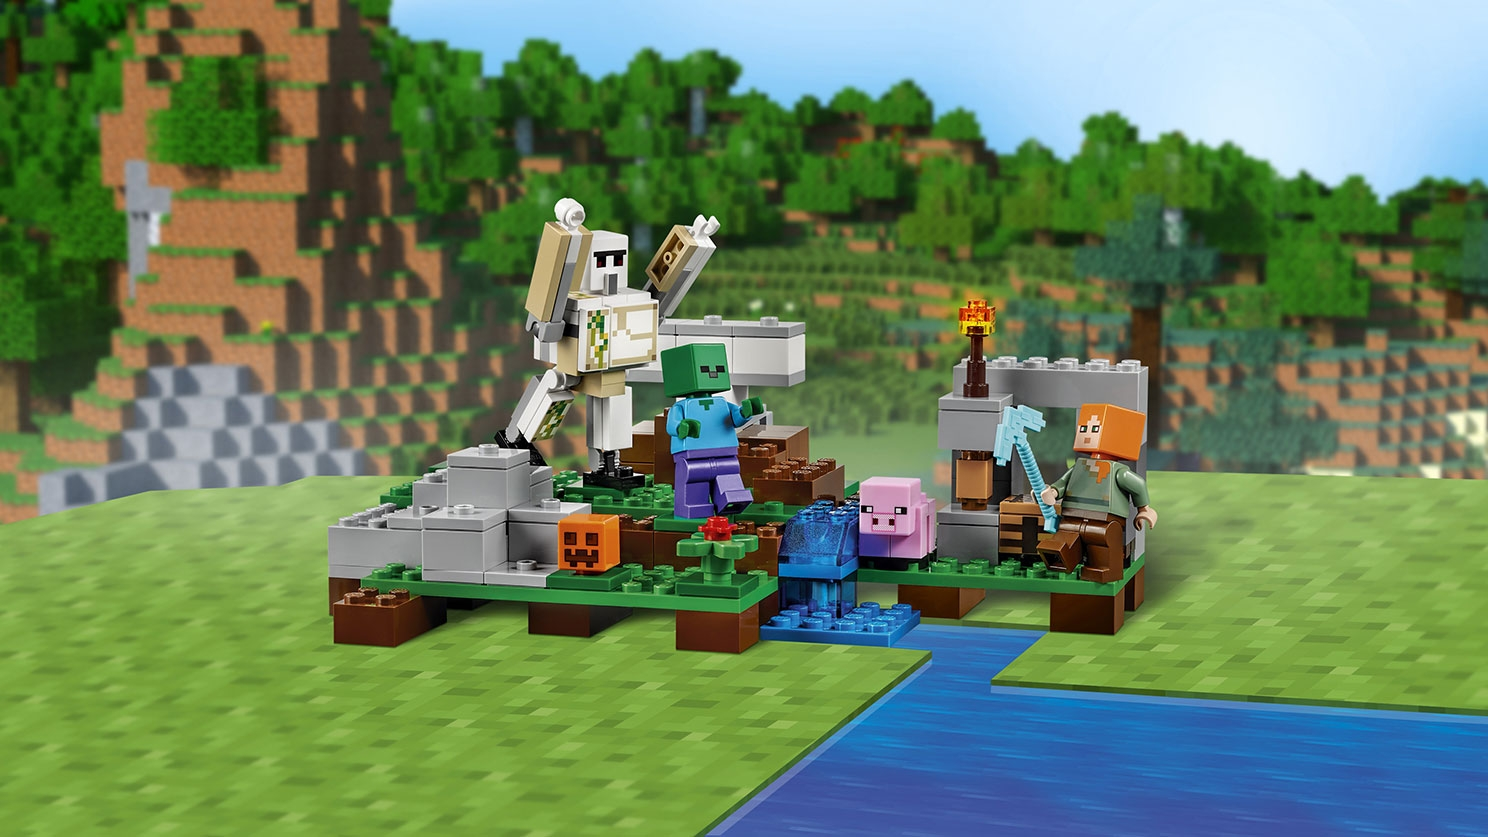 LEGO Minecraft - 21123 The Iron Golem - The iron golem and a zombie crashes the camp where Steve is with his pig and pumpkins.